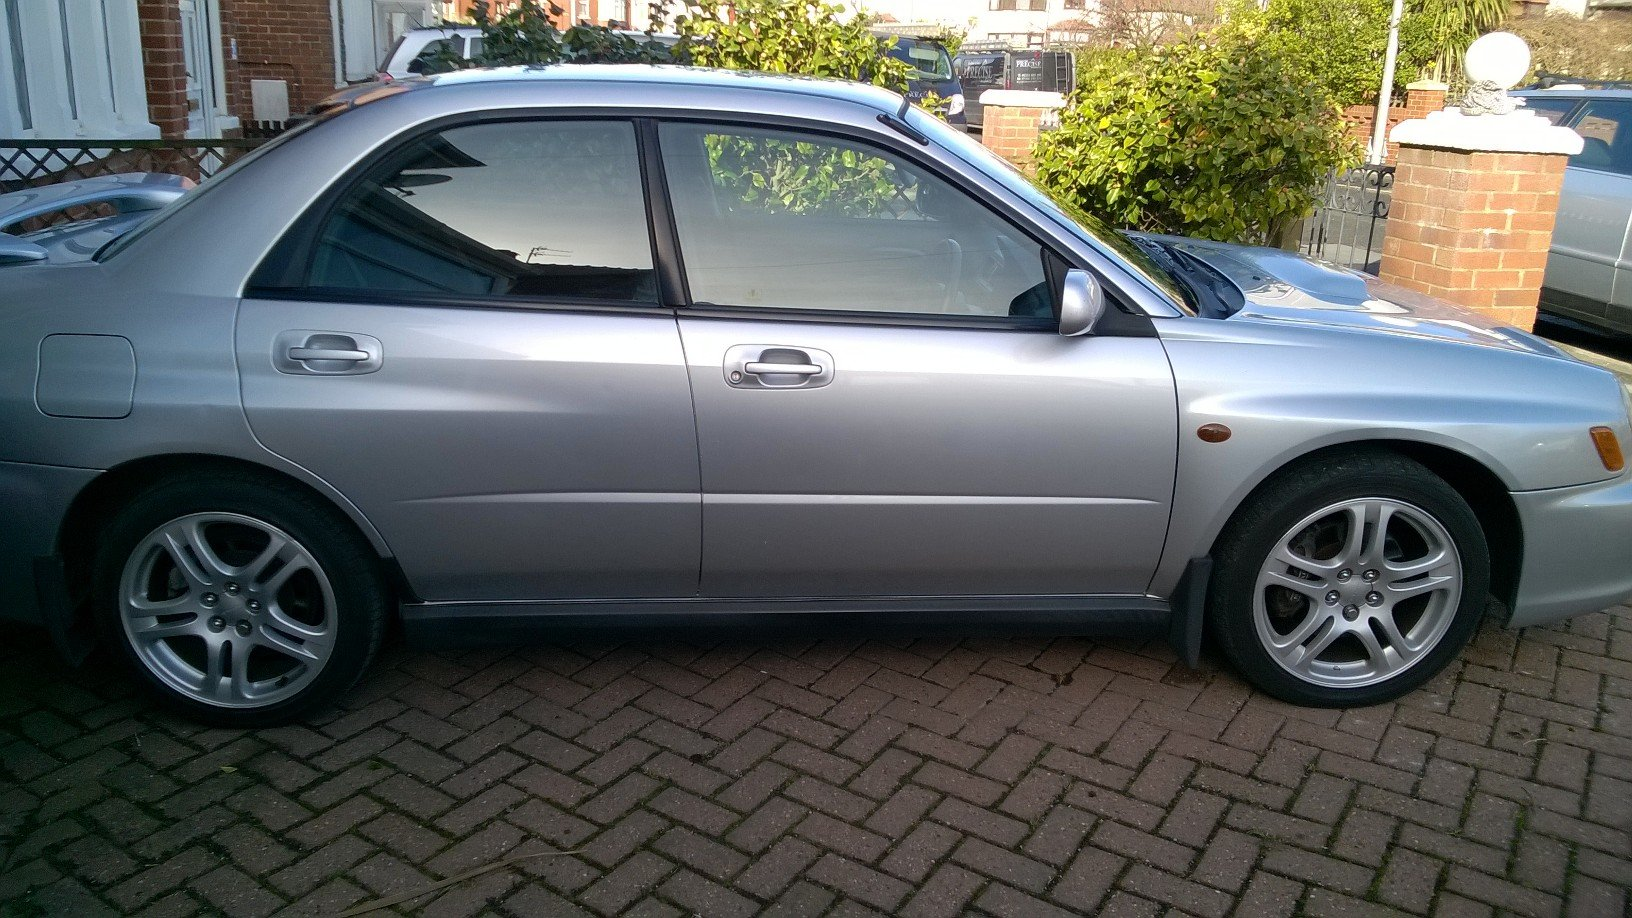 2001 WRX Impreza Turbo UK Car Totally Standard From New For Sale (picture 6 of 6)